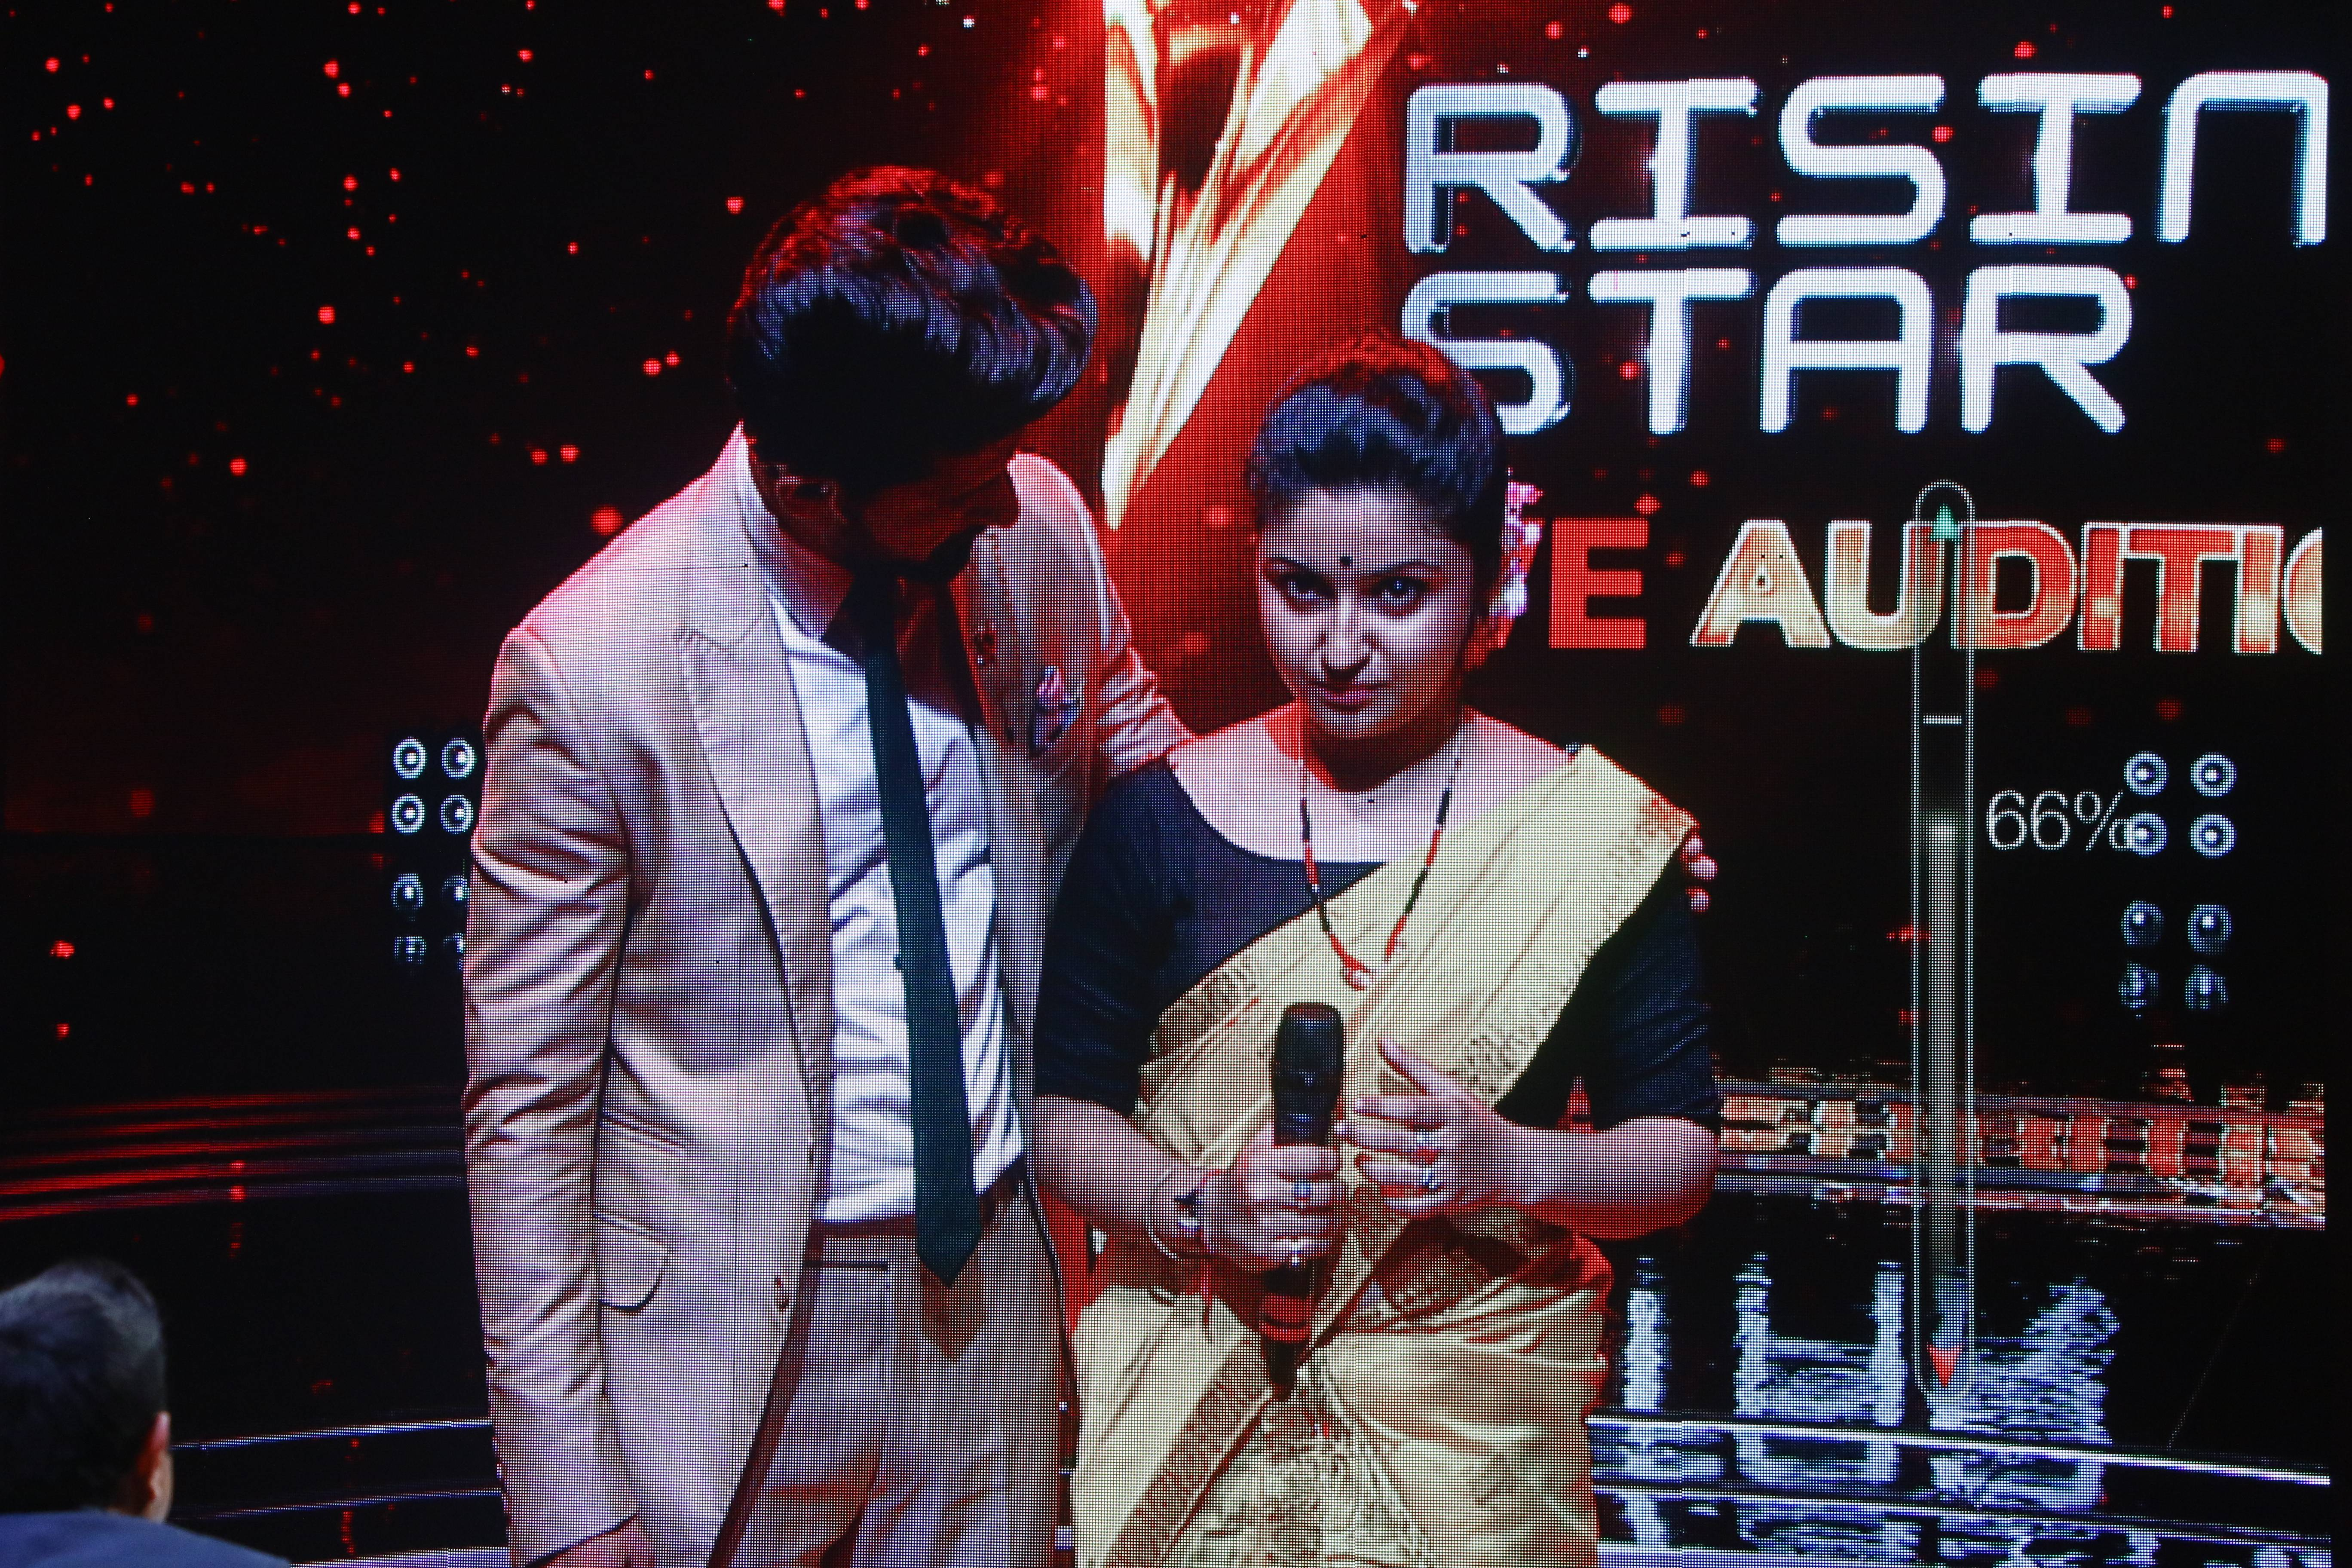 Emotional, energetic and highly entertaining week of Rising Star 2.